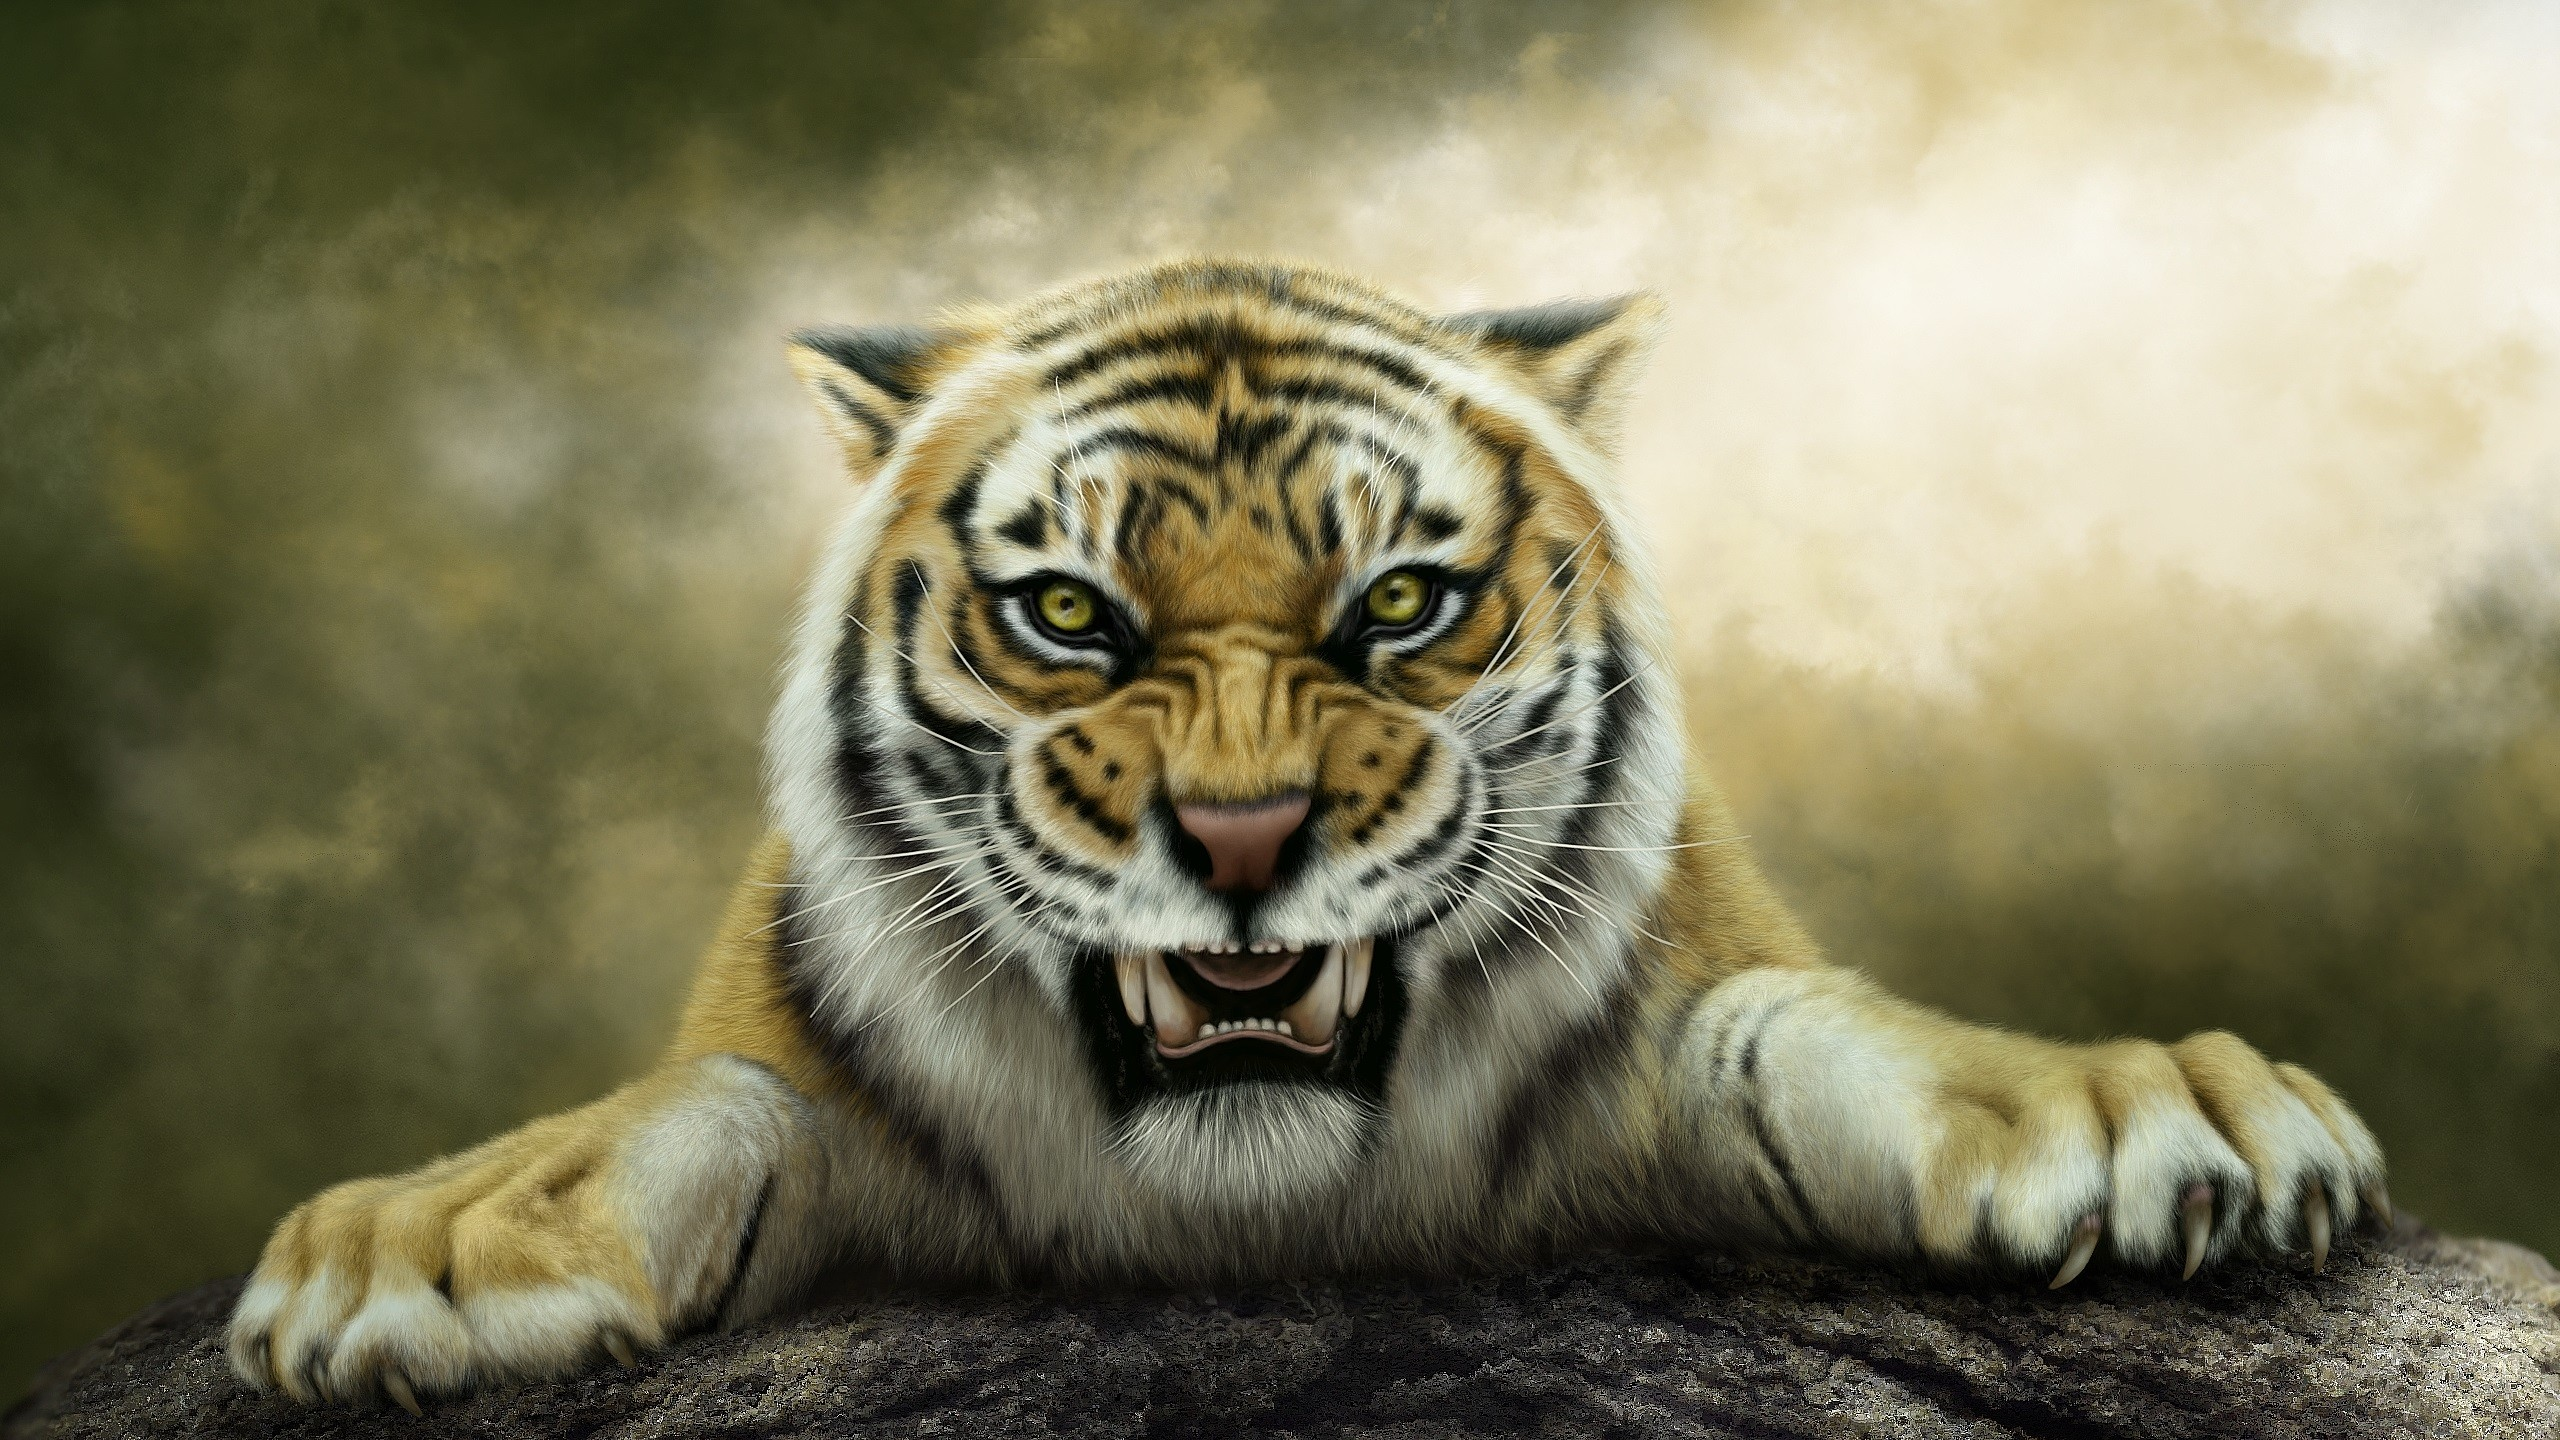 2560x1440 Forest king, tiger, face, big cat Wallpaper Preview